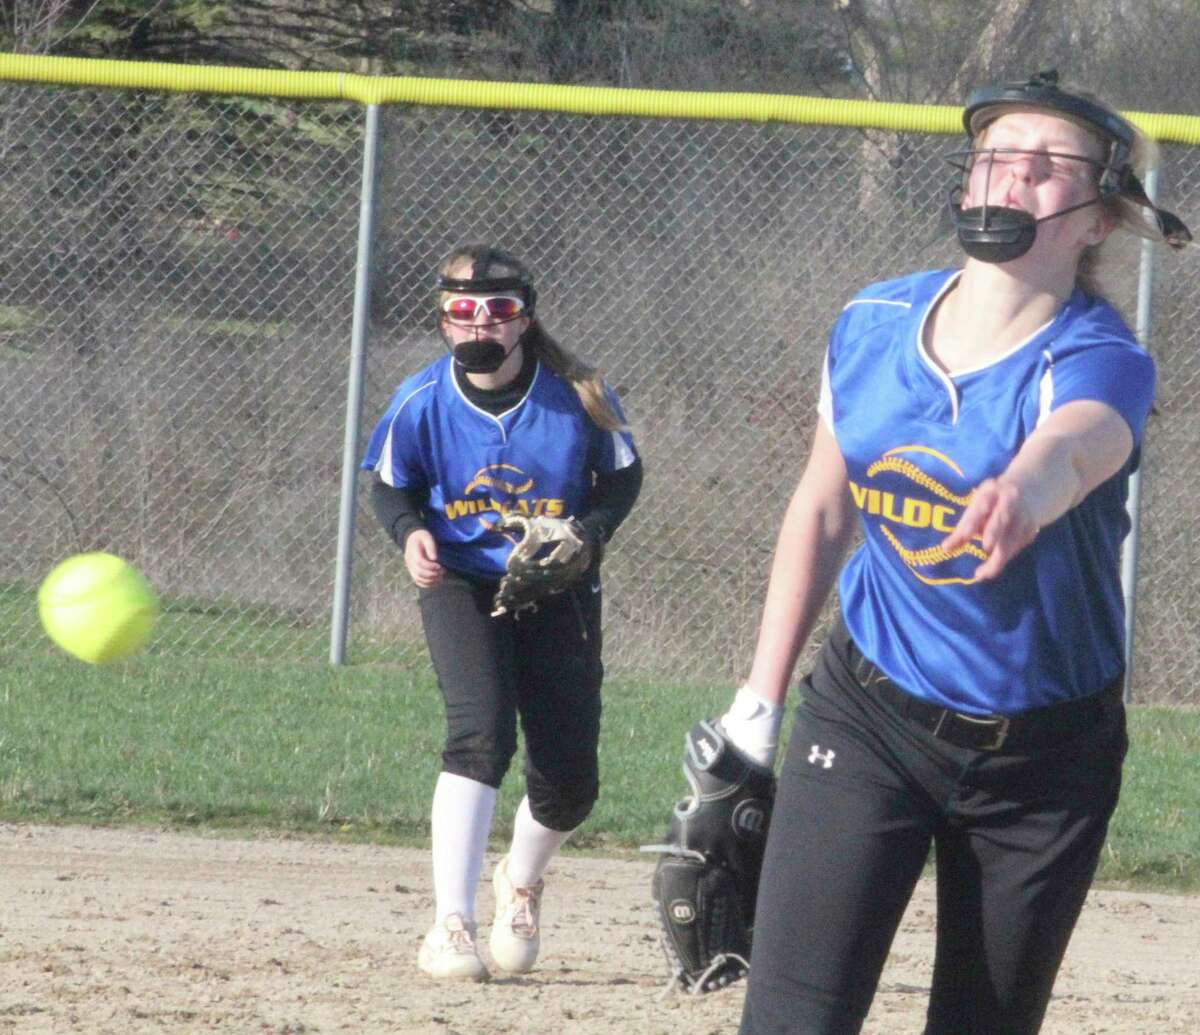 Evart's Addy Gray delivers a pitch against Big Rapids early in the softball season. (Pioneer file photo)